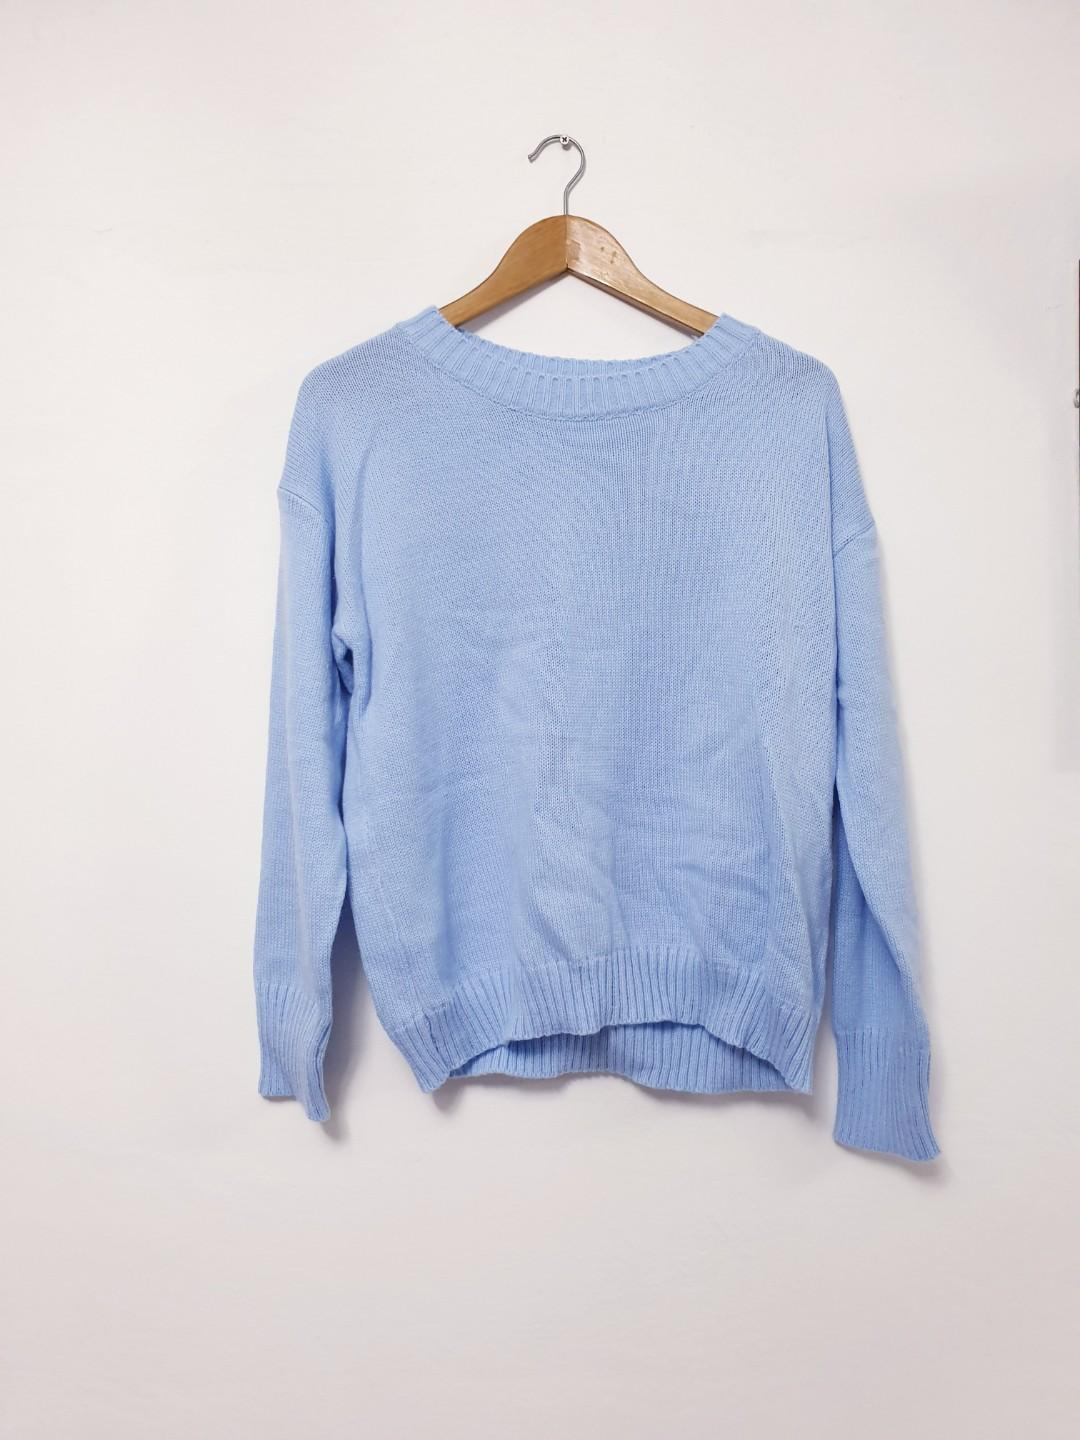 BN Knit Pullovers in Green and Blue [Version 1] #PICK5